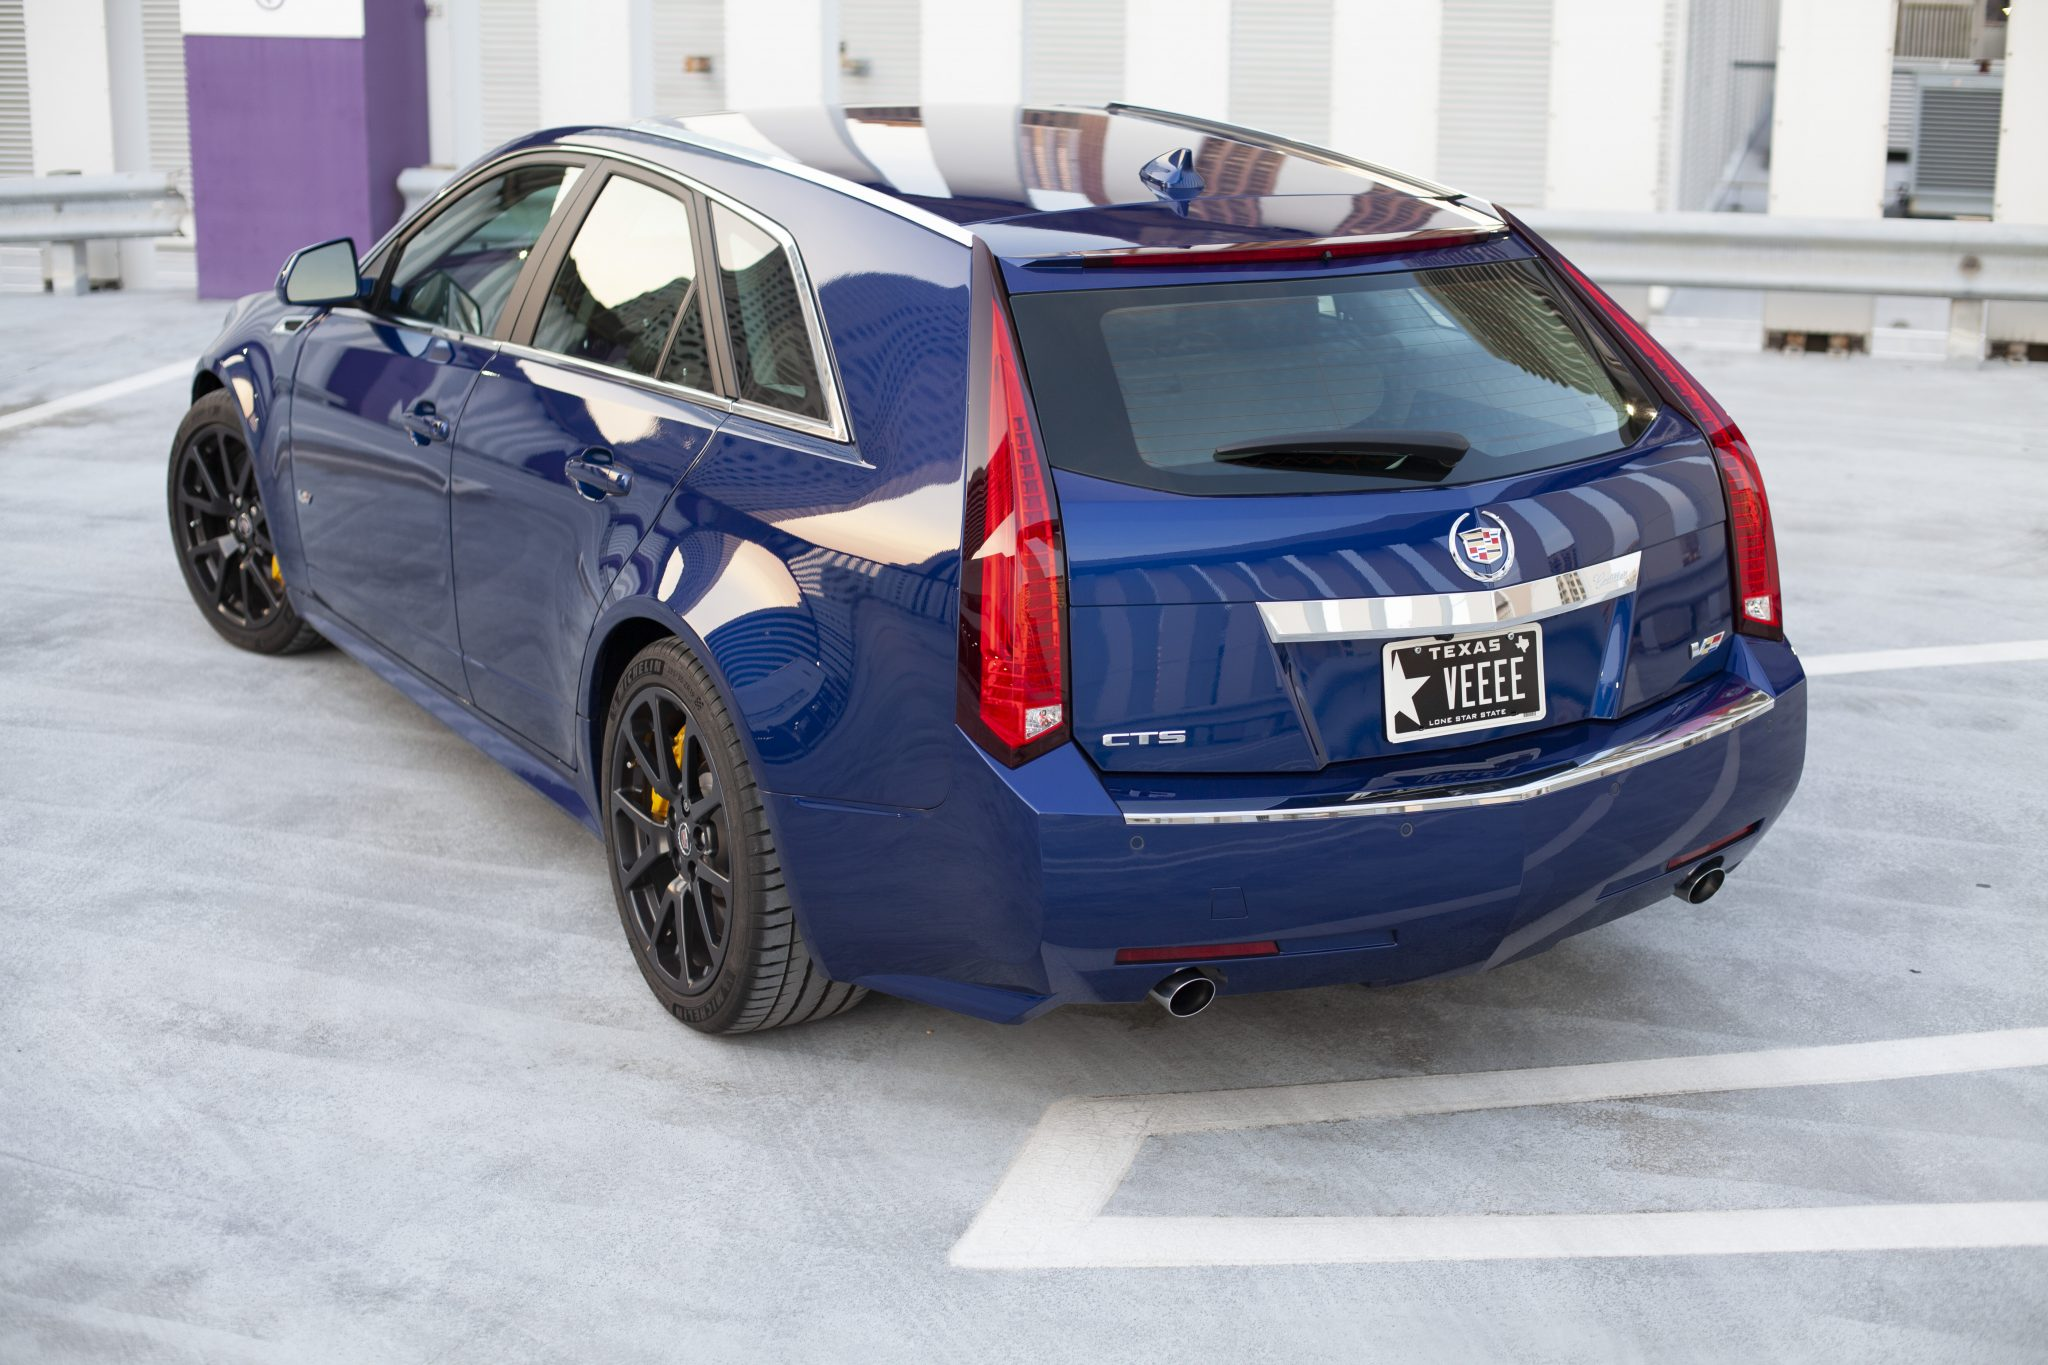 2012 Cadillac CTS-V Wagon rear three-quarter